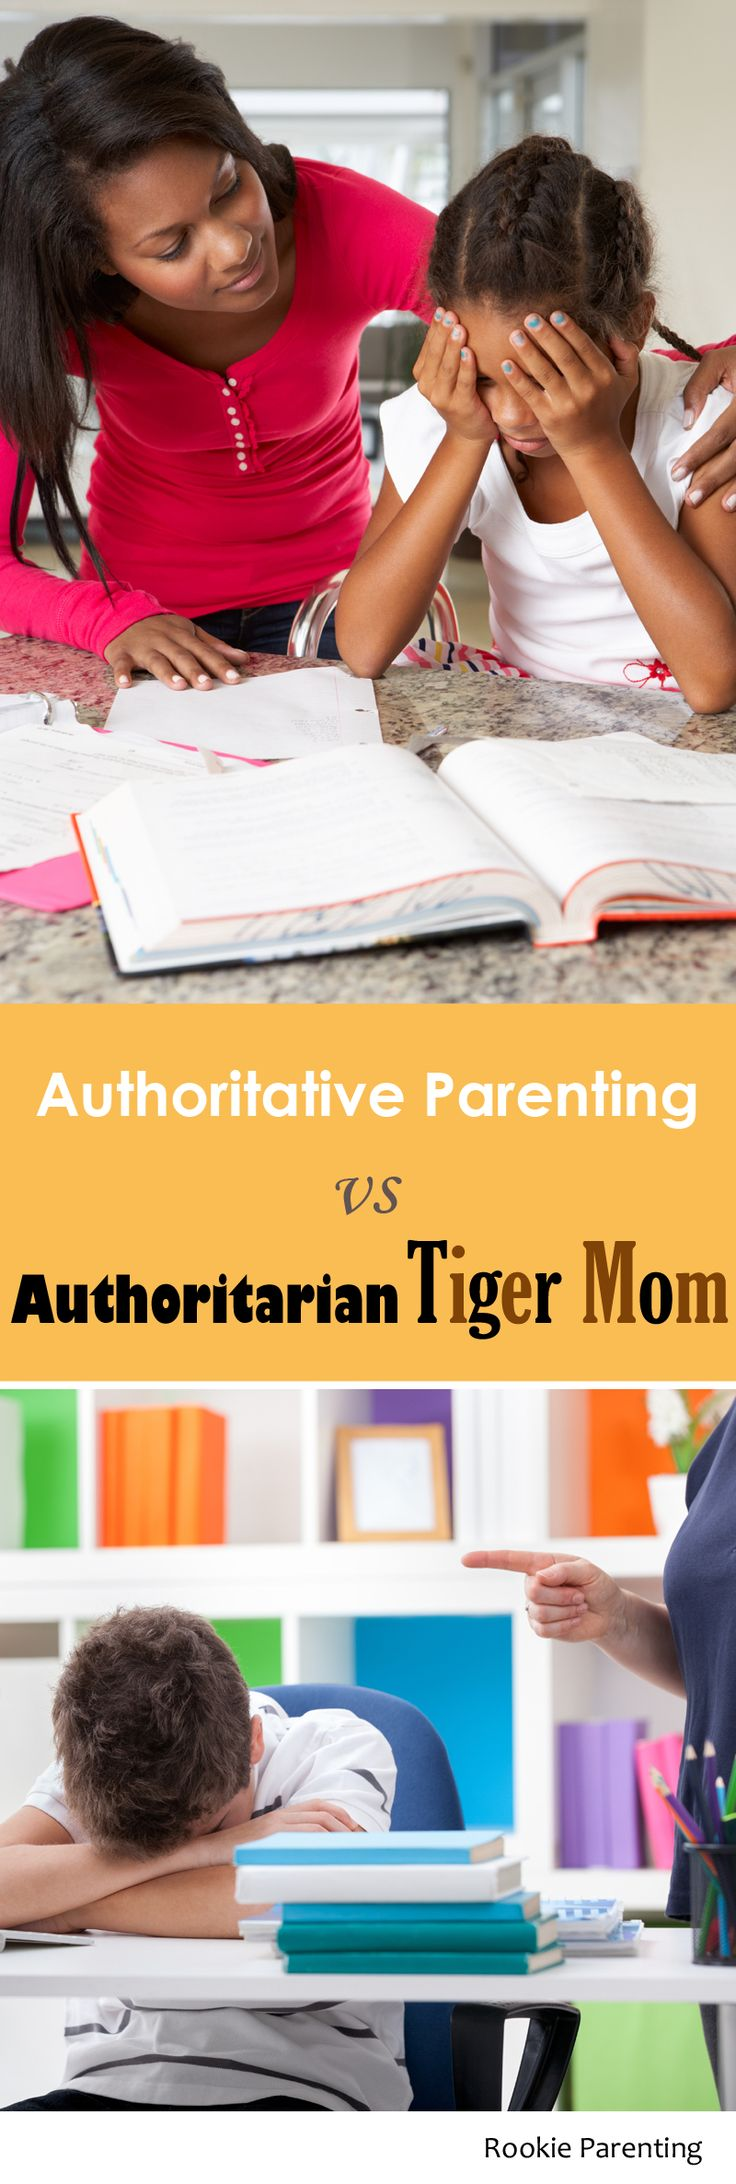 Best Parenting Style | Authoritative vs Authoritarian | Science Studies